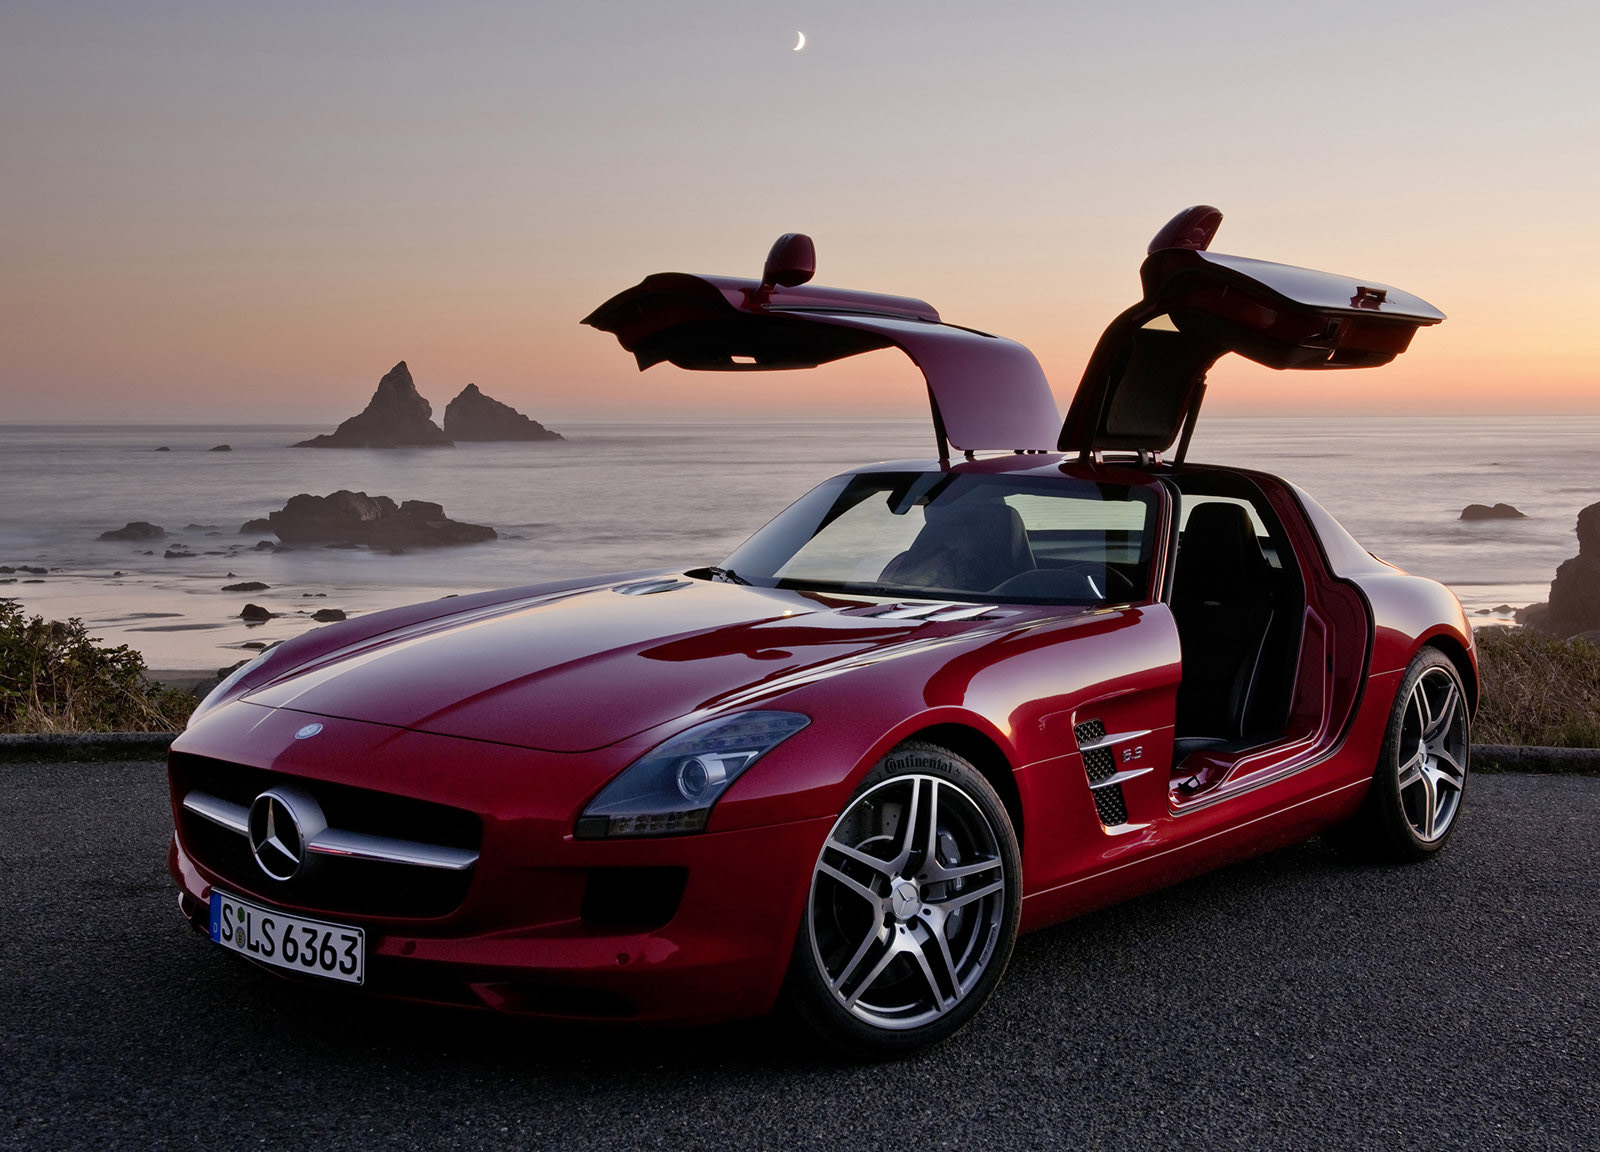 Top 3 Luxury Vehicles for Summer